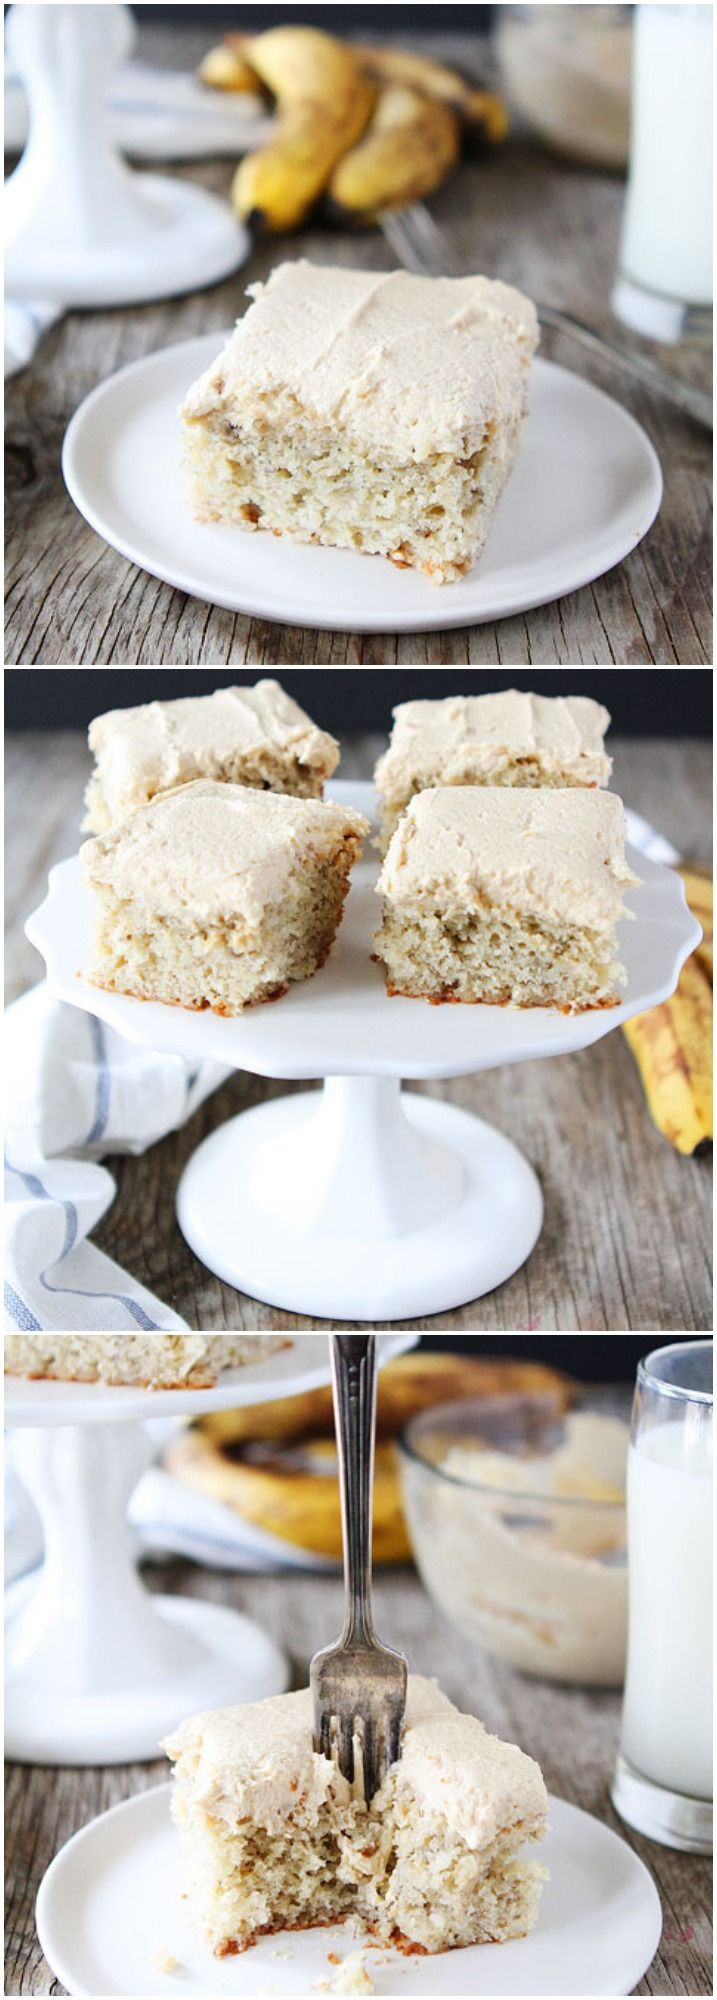 Easy Banana Cake with Peanut Butter Frosting Recipe on twopeasandtheirpo... This recipe is a keeper! It is so easy and SO good!